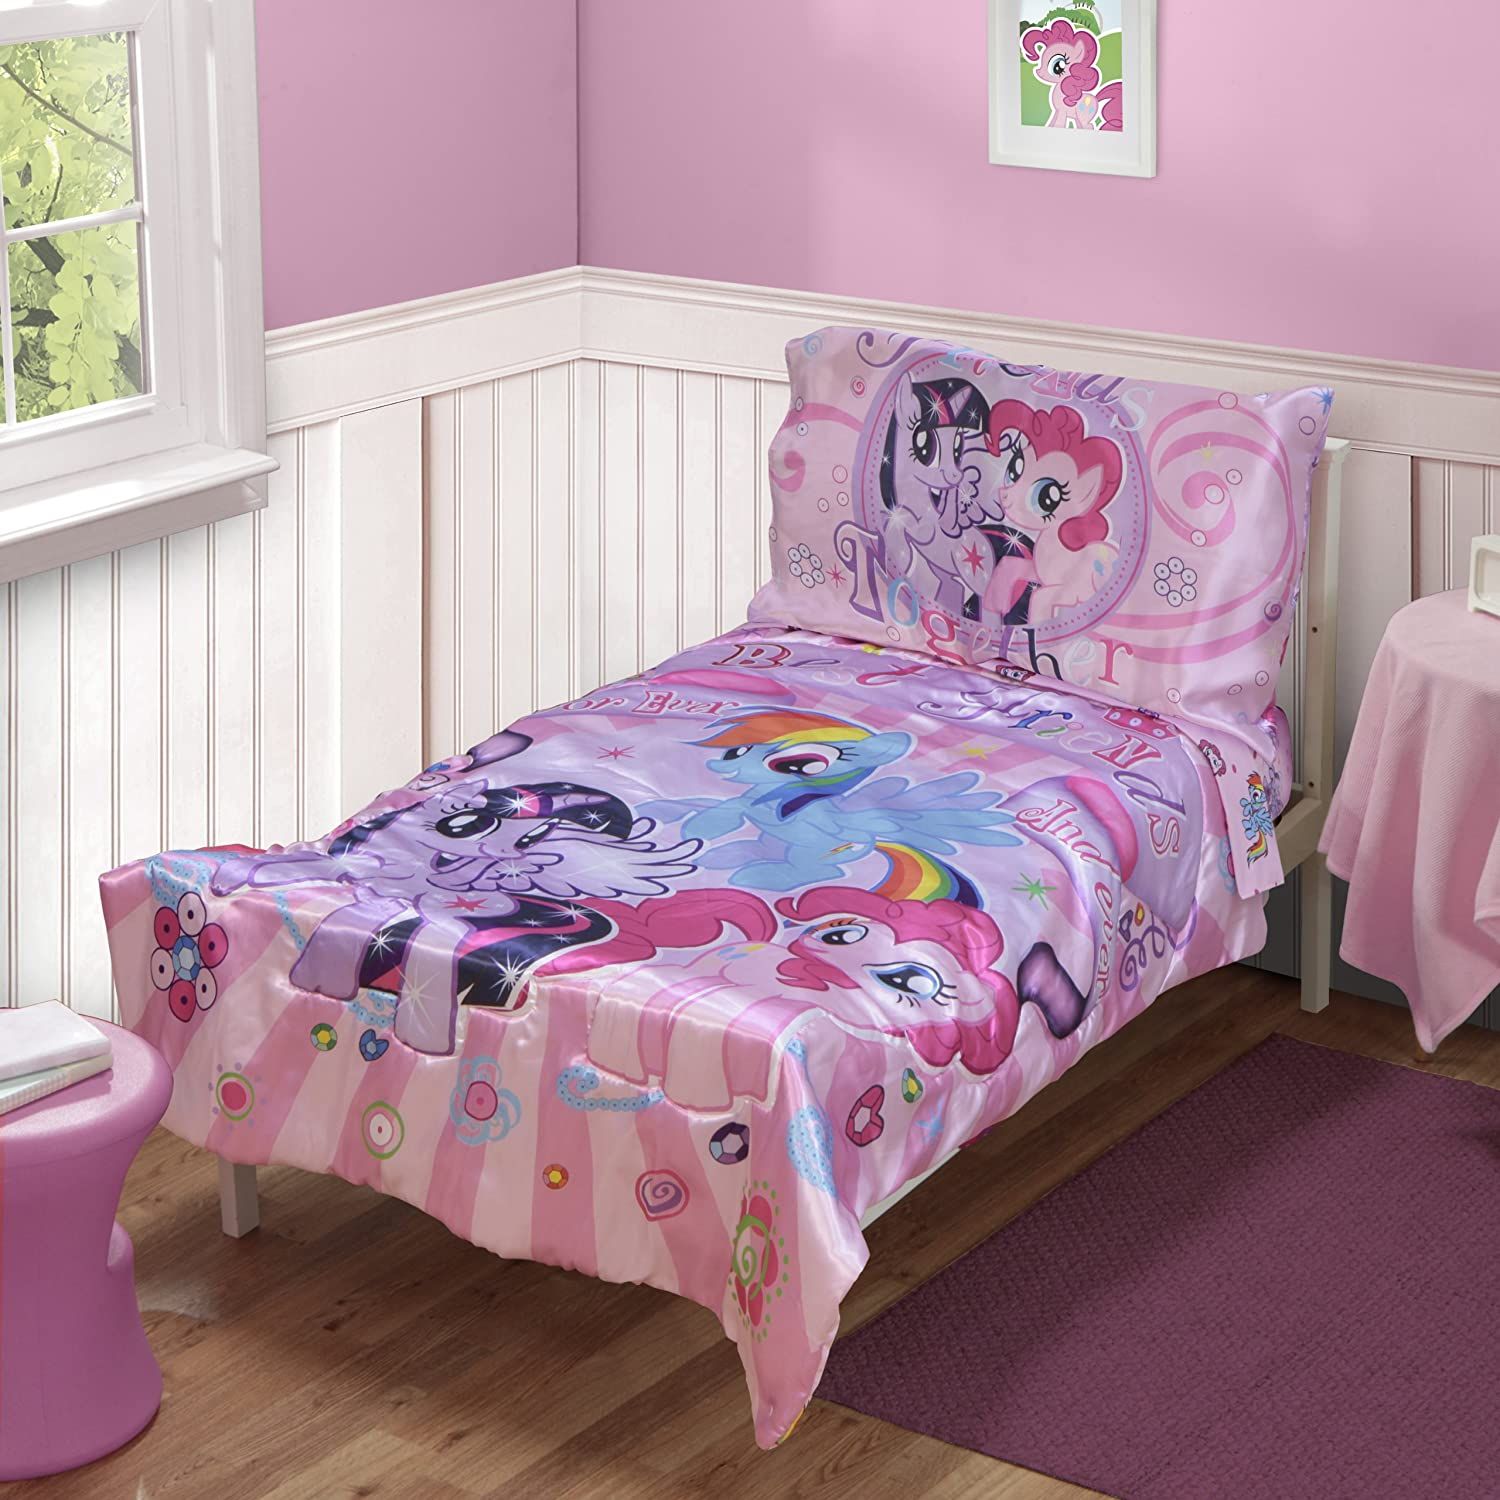 NEW My Little Pony Bedding Set Toddler 4pc Pink Fitted